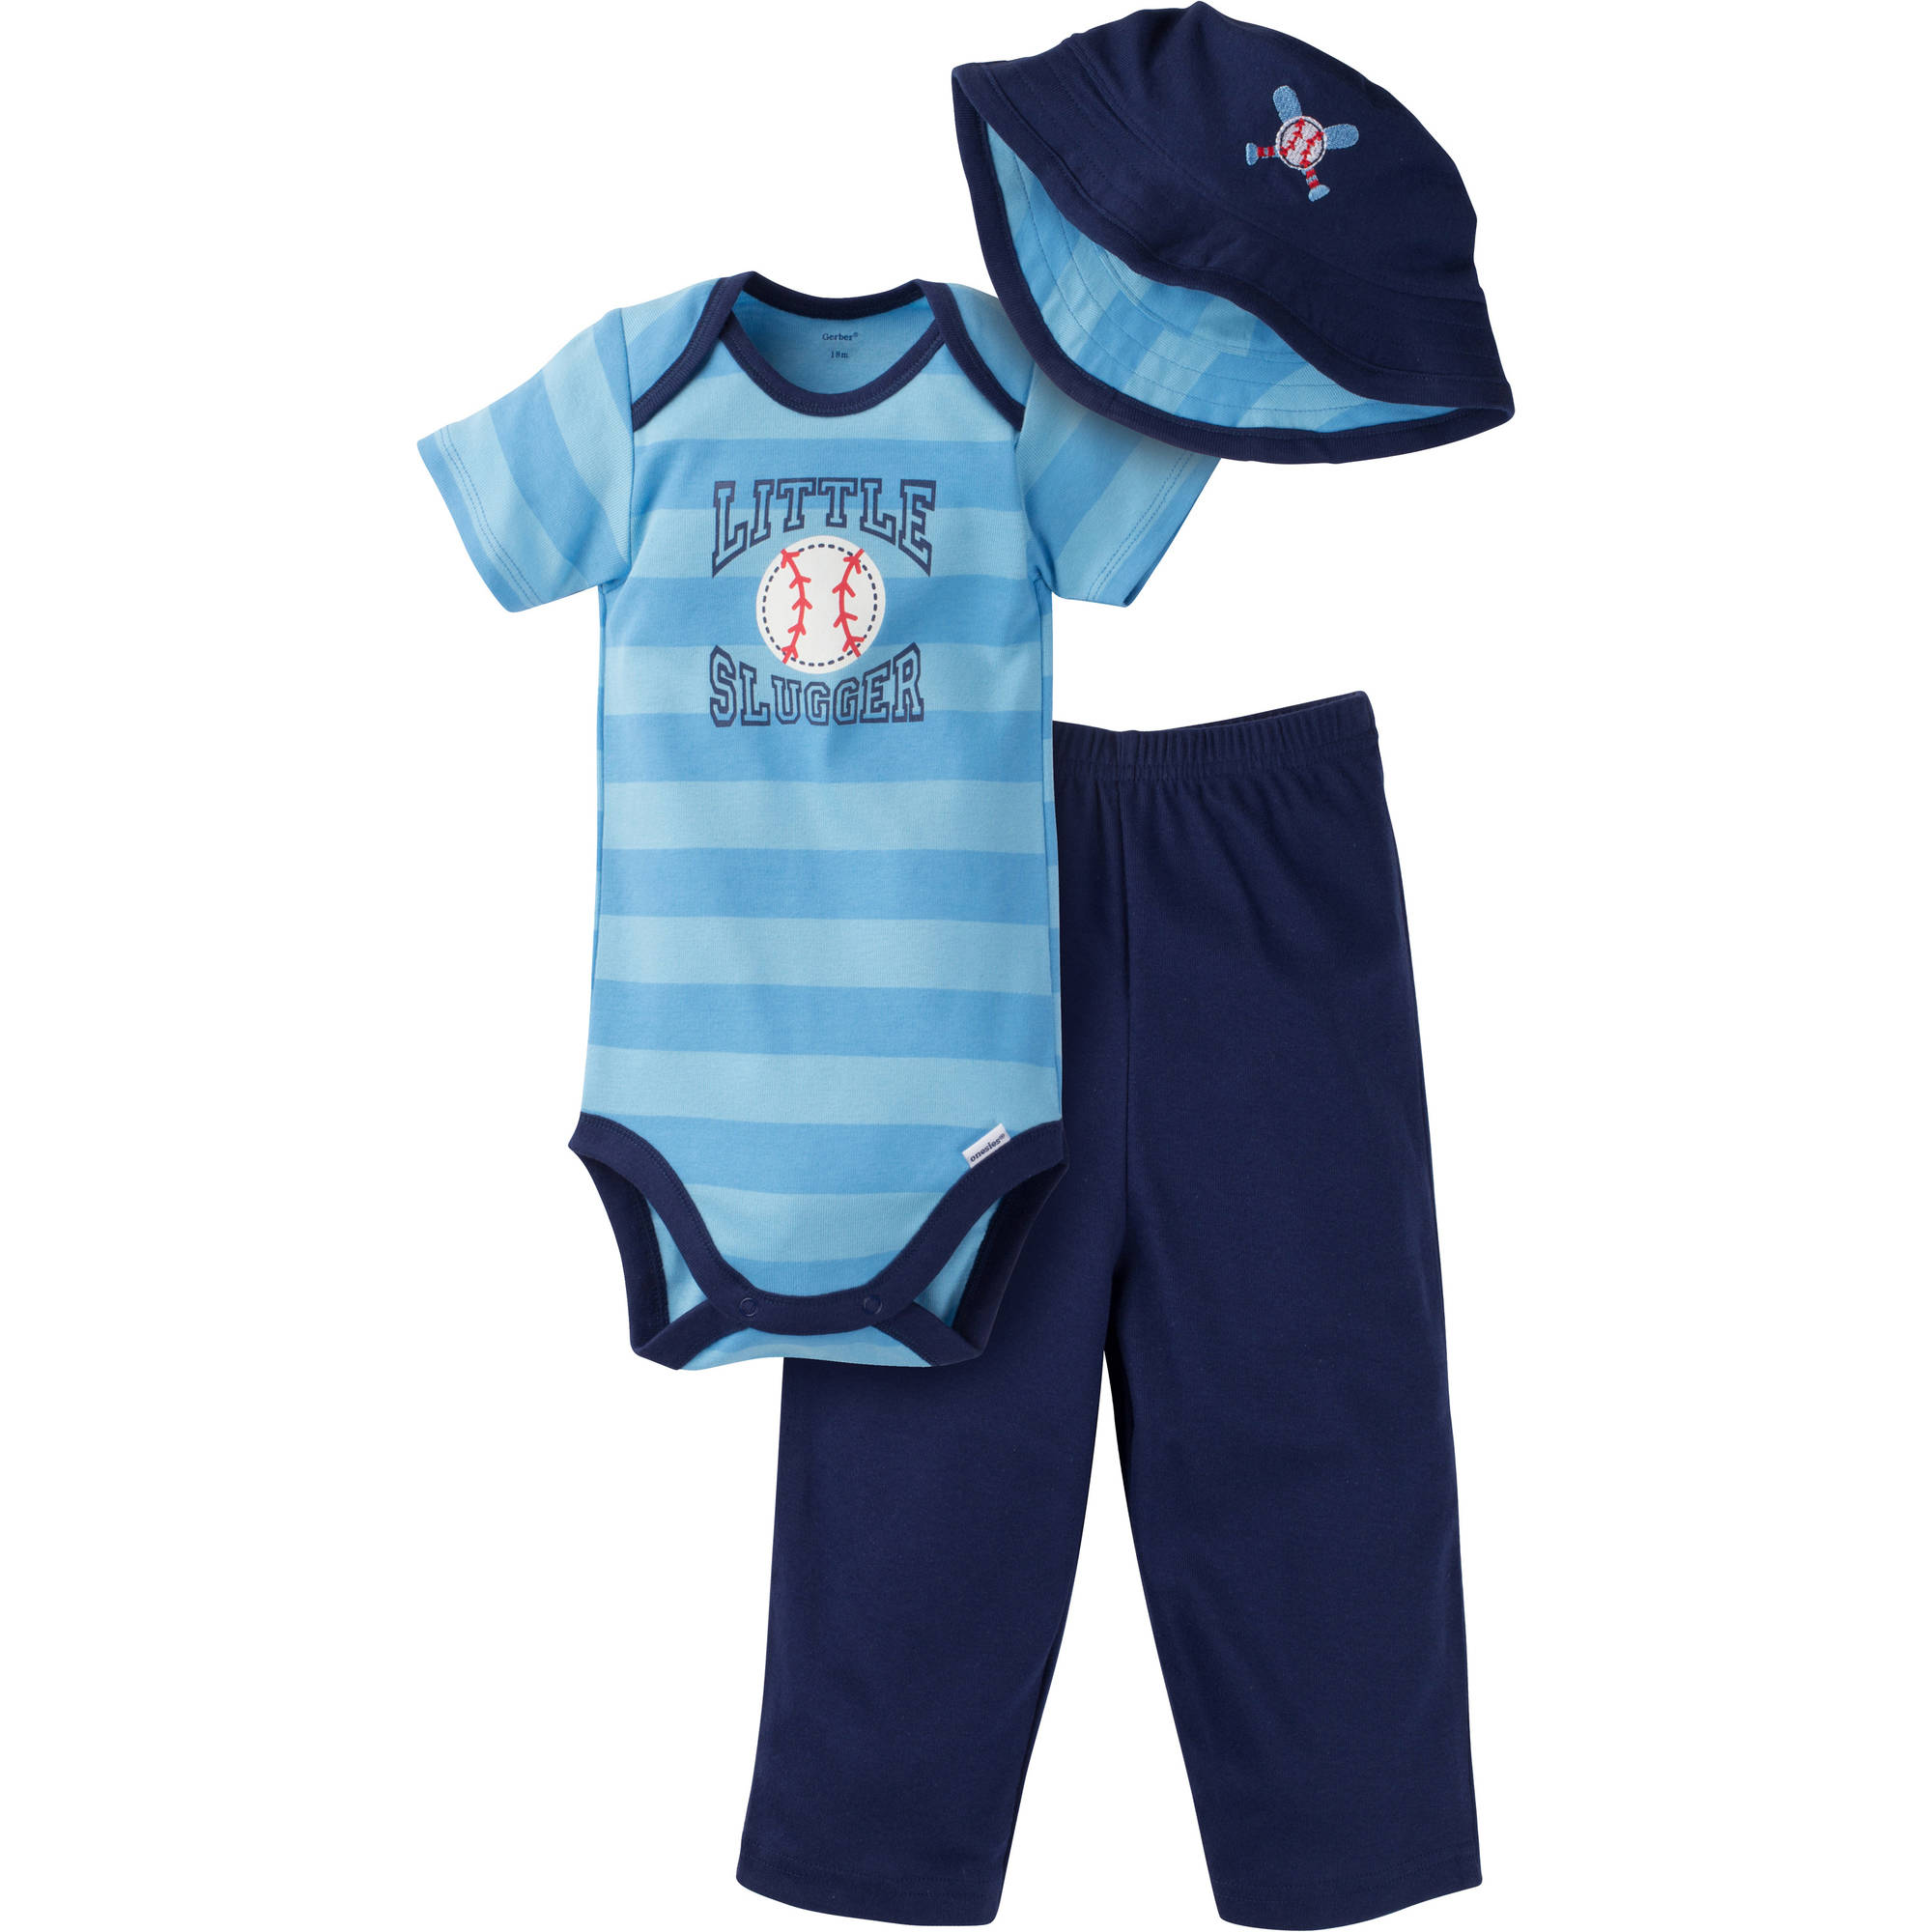 Gerber Newborn Baby Boy 3-Piece Bodysuit, Pant and Bucket Hat Outfit Set